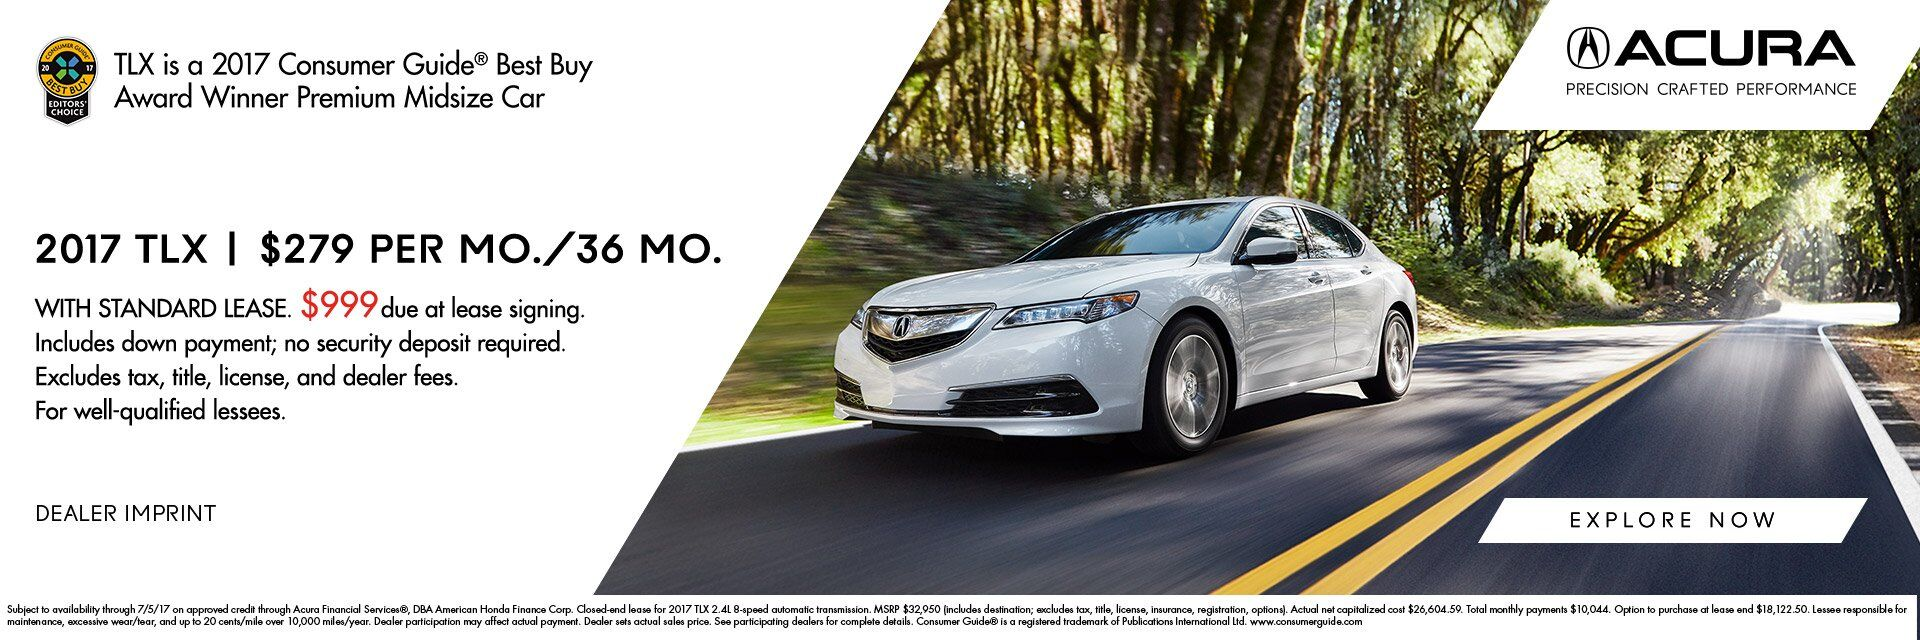 Tri cities nissan johnson city tn - 2017 Tlx 279 Lease 2017_tlx_05 02_07 05 17